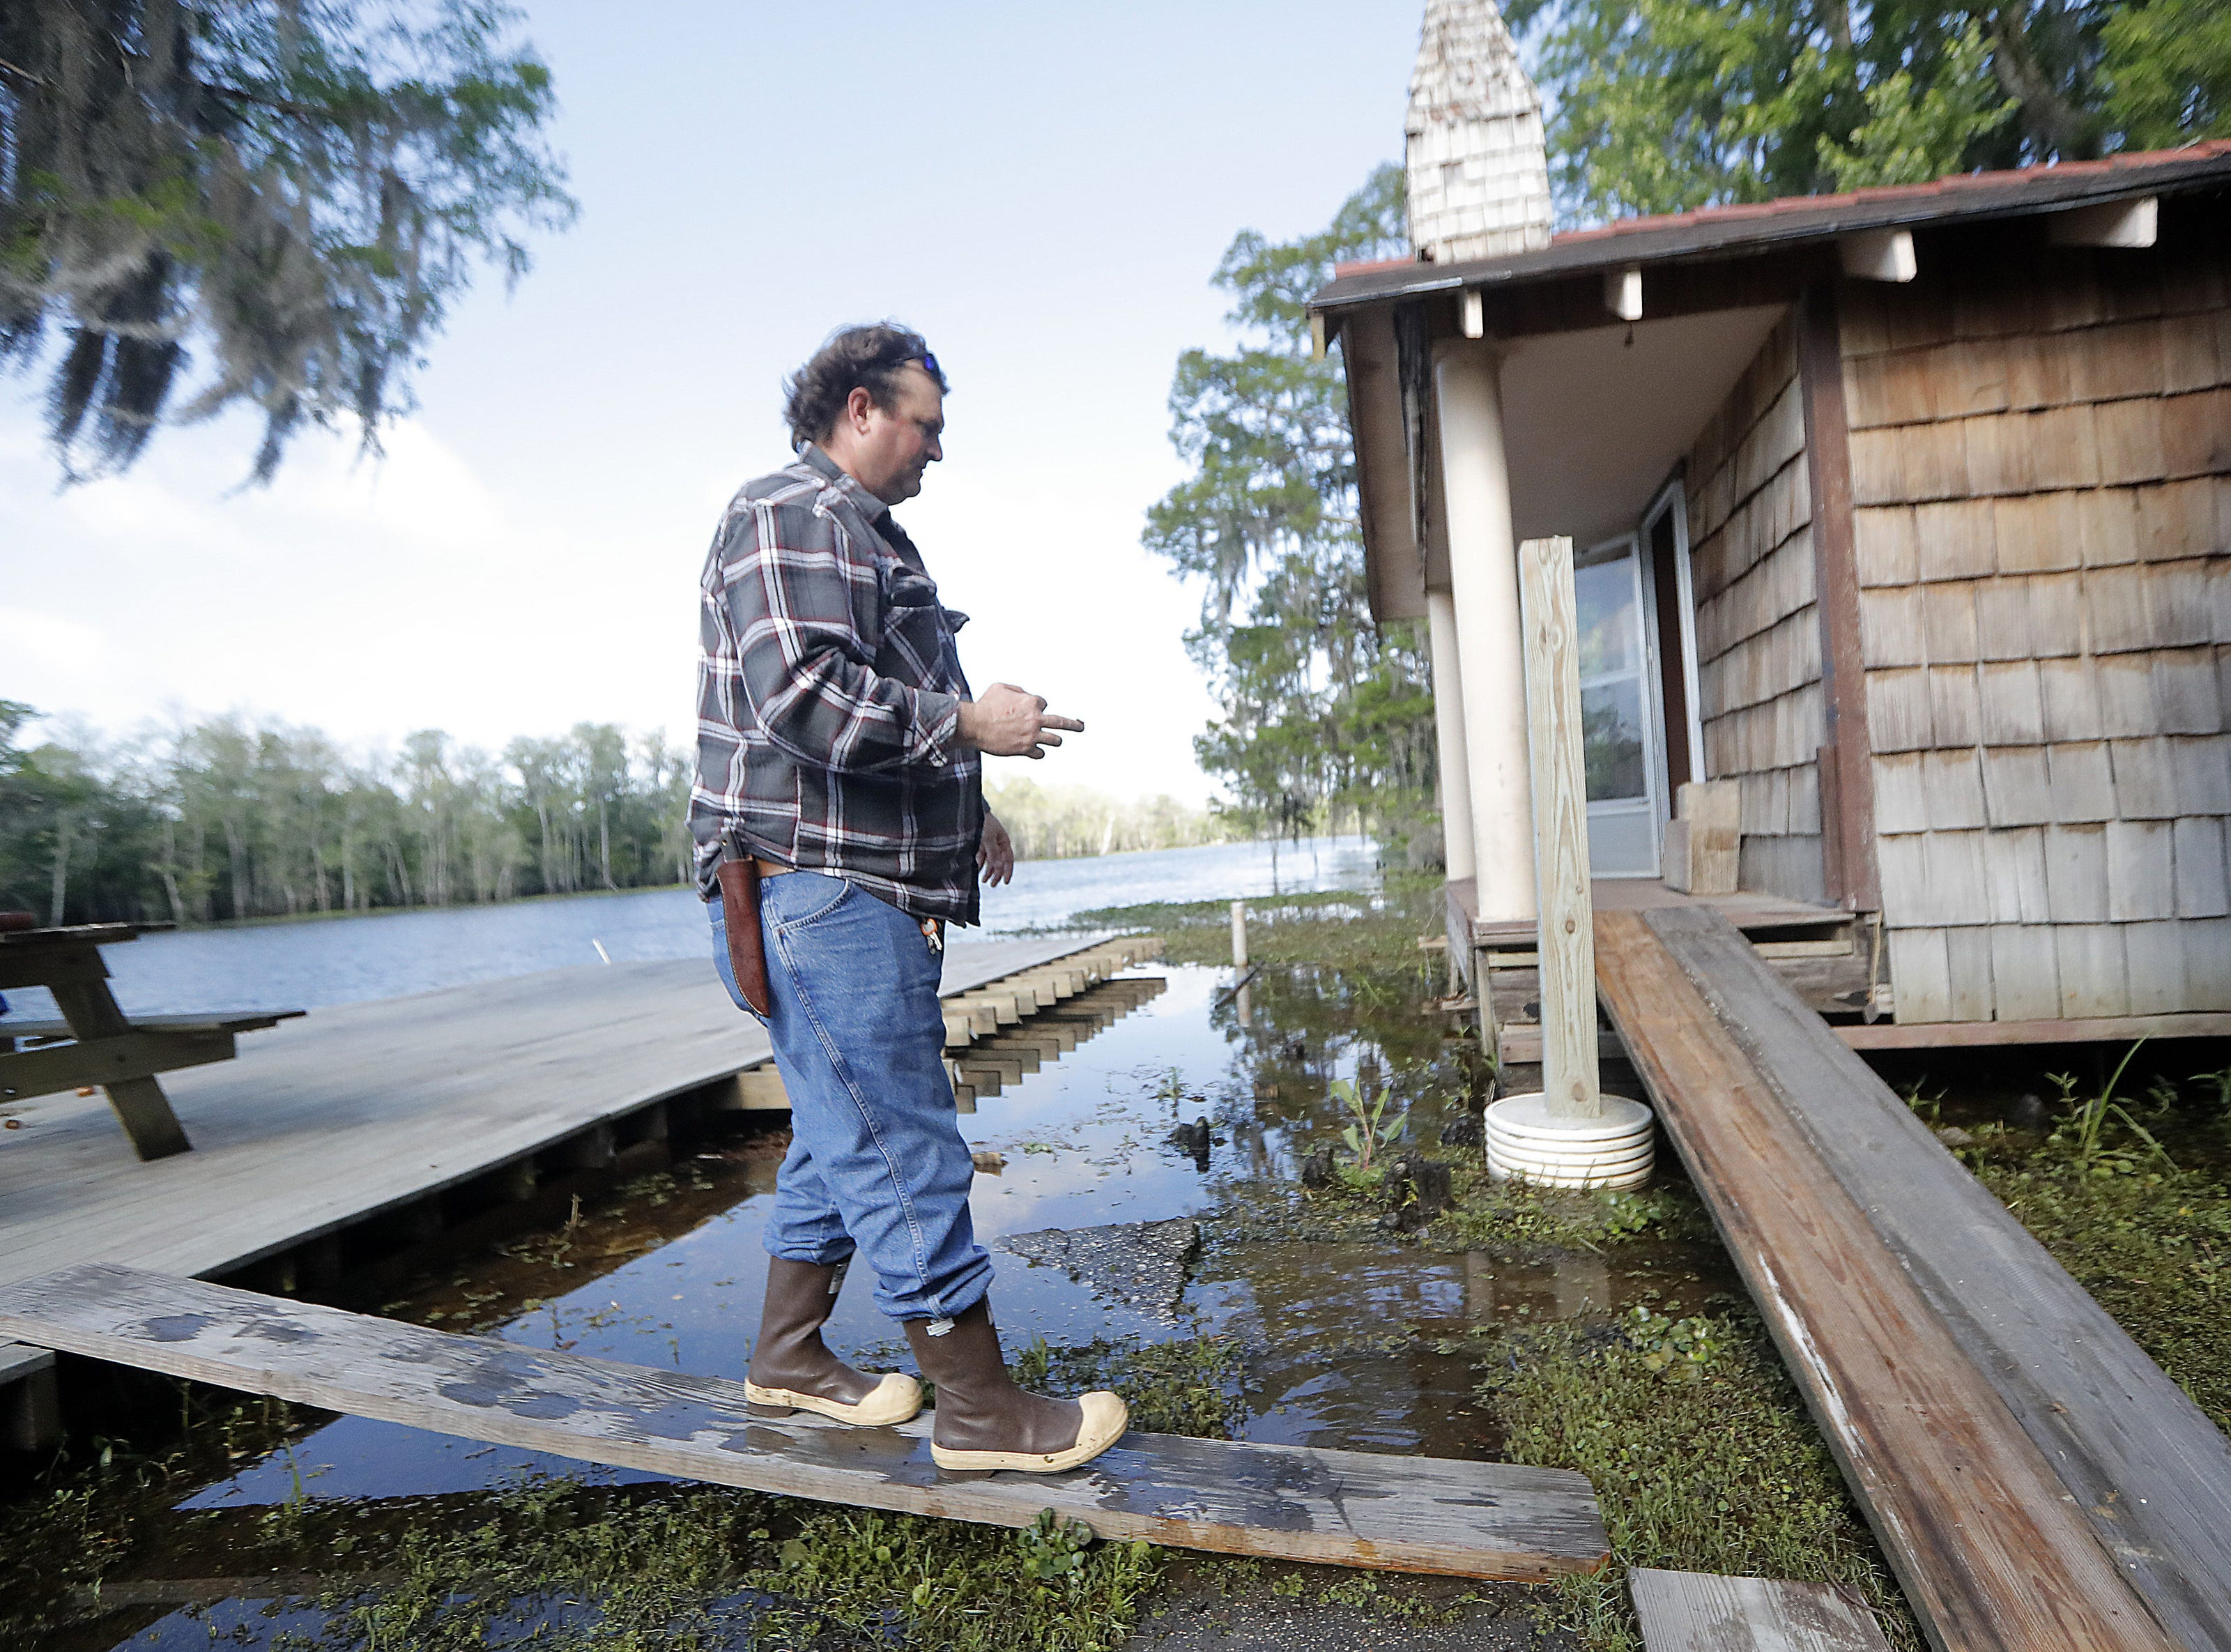 Lance Weber walks on a plank on the dock outside Our Lady of Blind River Chapel in St. James Parish, La., Tuesday, April 9, 2019. The chapel was built decades ago by his grandparents, Martha Deroche and her husband Bobby, after Martha had a vision of Jesus kneeling by a rock. Over the years, people have stopped by in boats or kayaks to pray in the one-room chapel. But floods over the years have damaged the little church, and Lance had to close it about two years ago out of safety concerns. (AP Photo/Gerald Herbert)